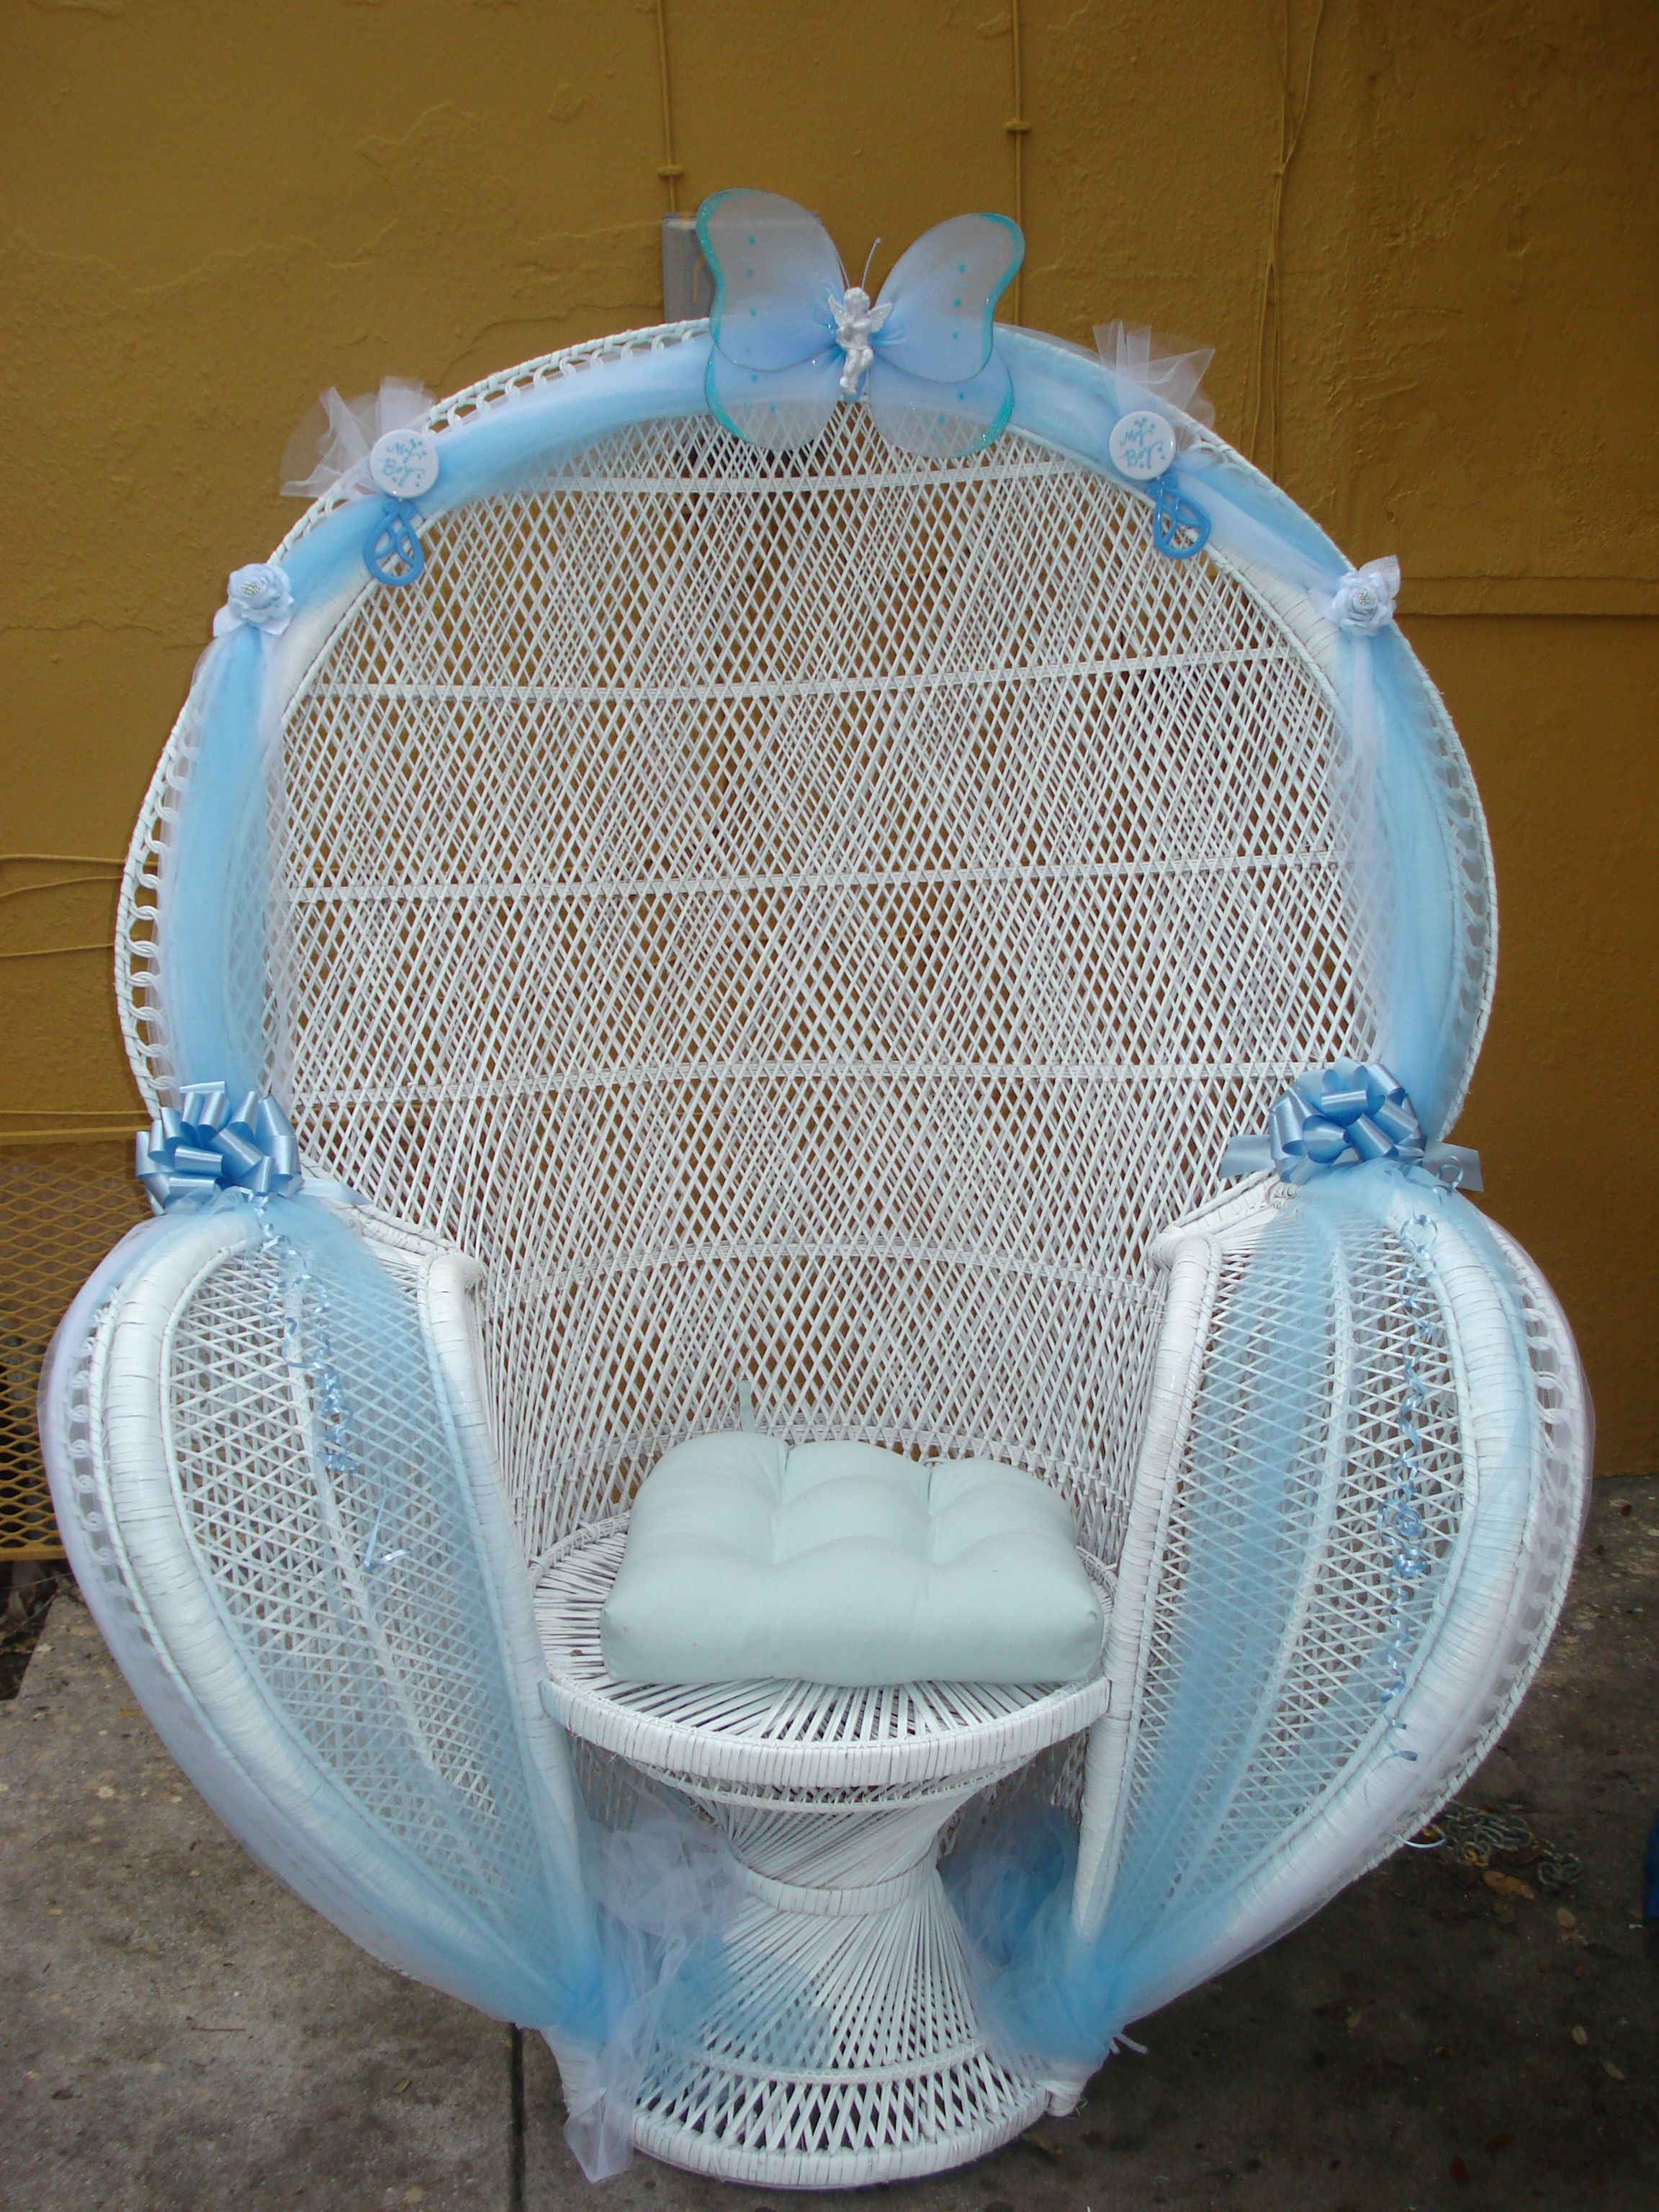 baby shower chair decorations dunlop fishing chairs on pinterest balloon arch rocking